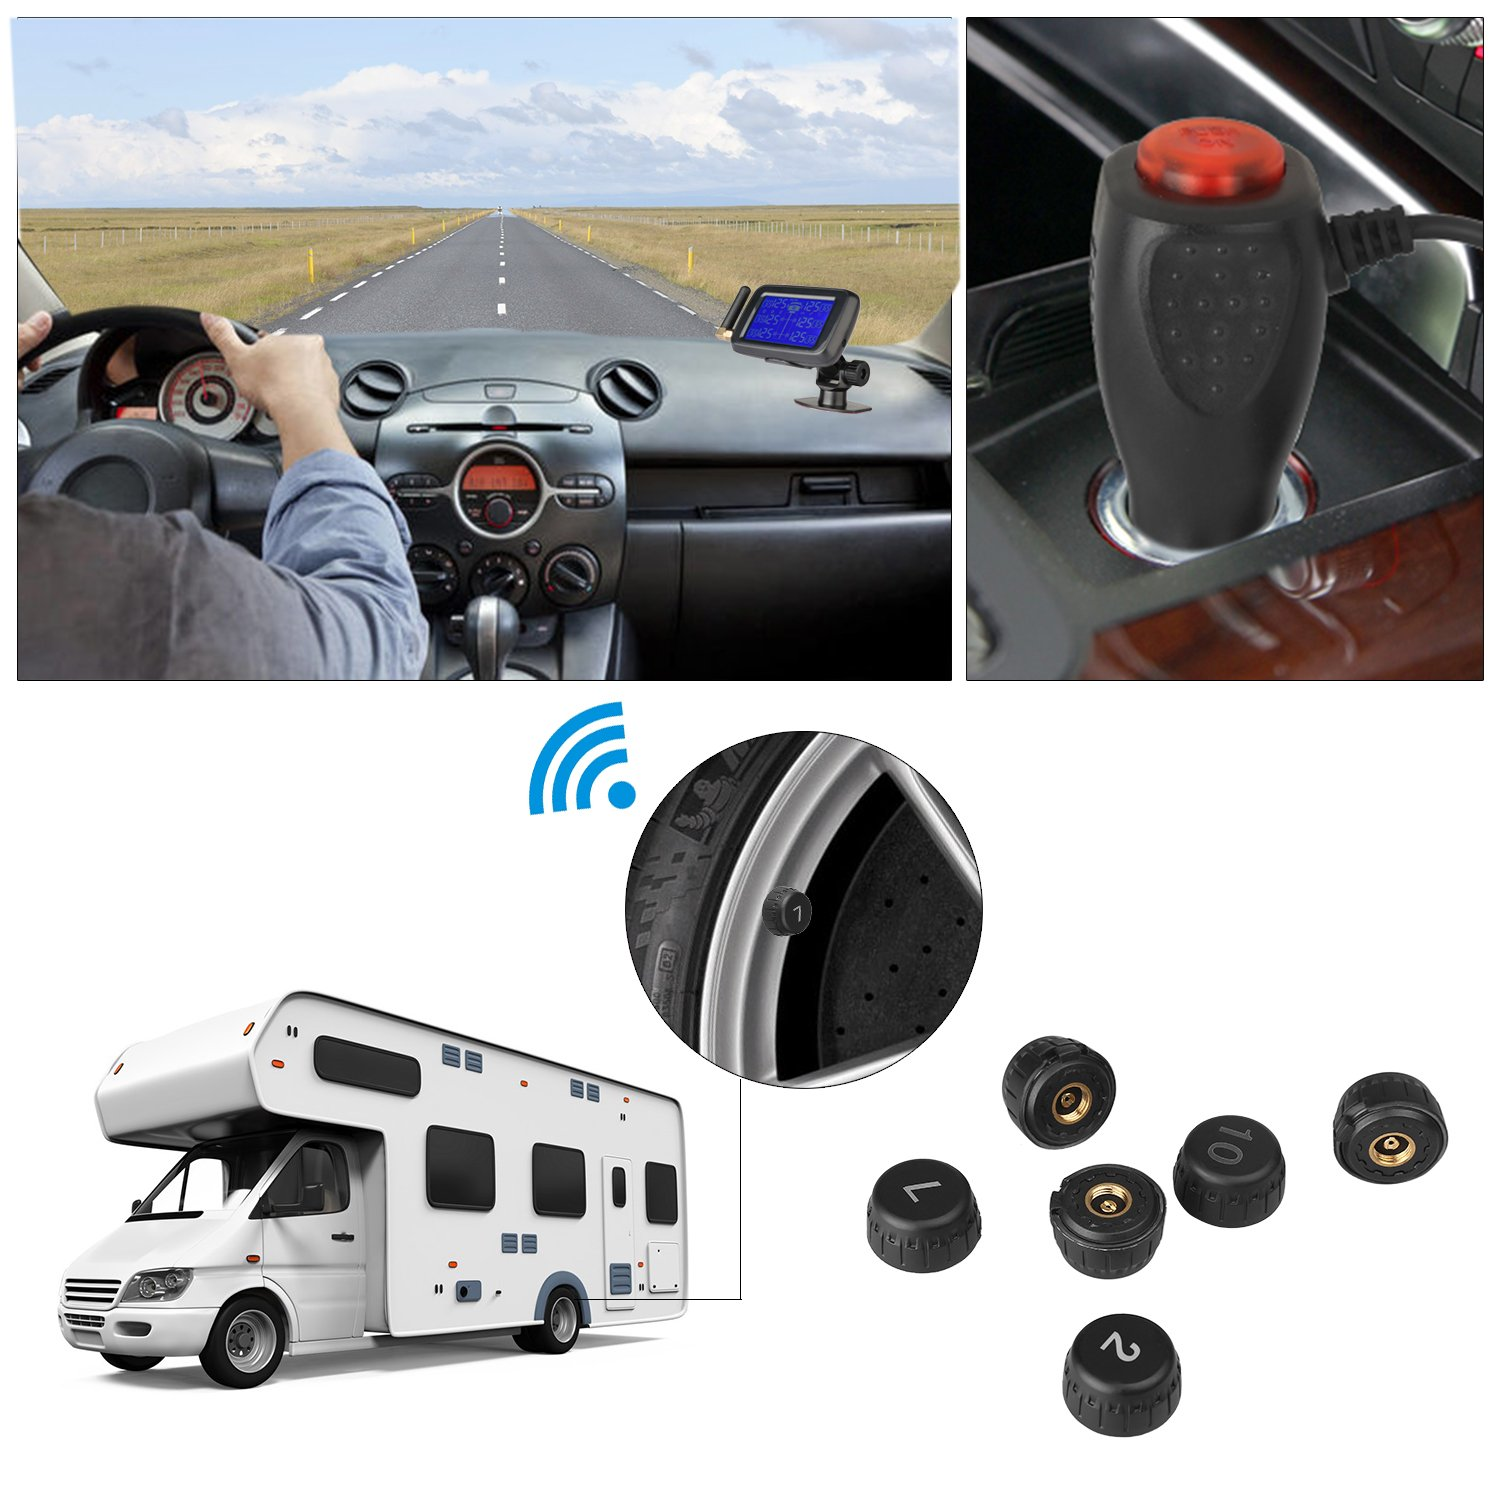 B-Qtech Tire Pressure Monitoring System for RV Wireless TPMS with 6 External Sensors, Suction Cup Mounting by B-Qtech (Image #6)